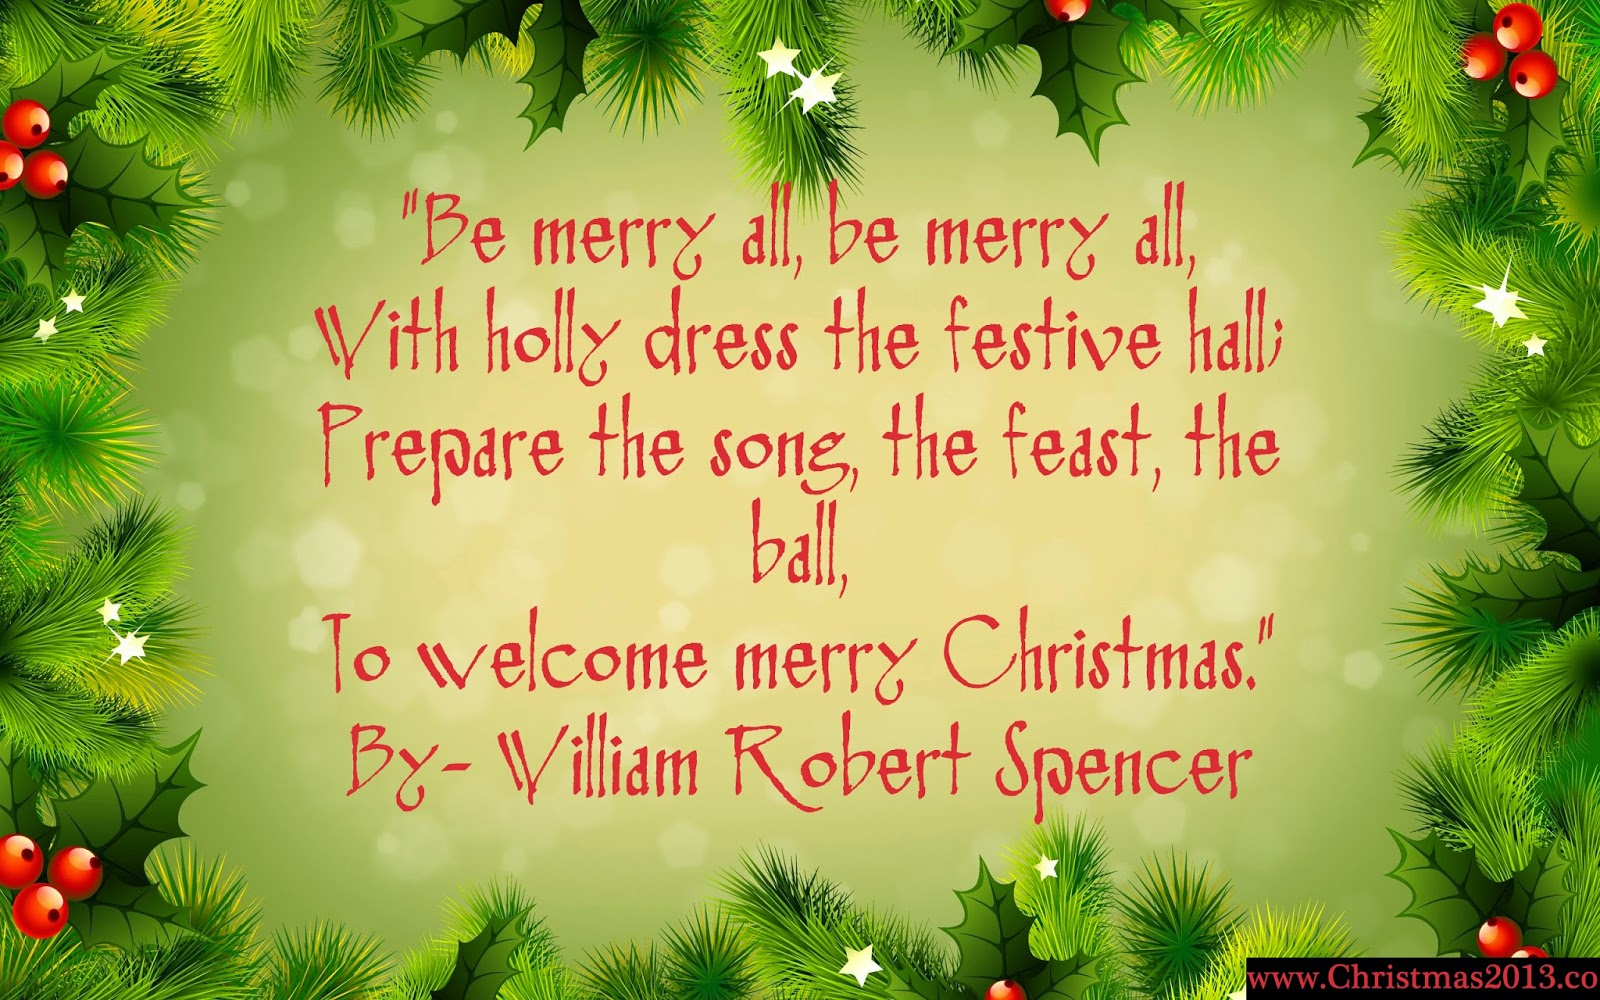 Free Christmas Quotes And Sayings Quotesgram: Great Christmas Quotes. QuotesGram